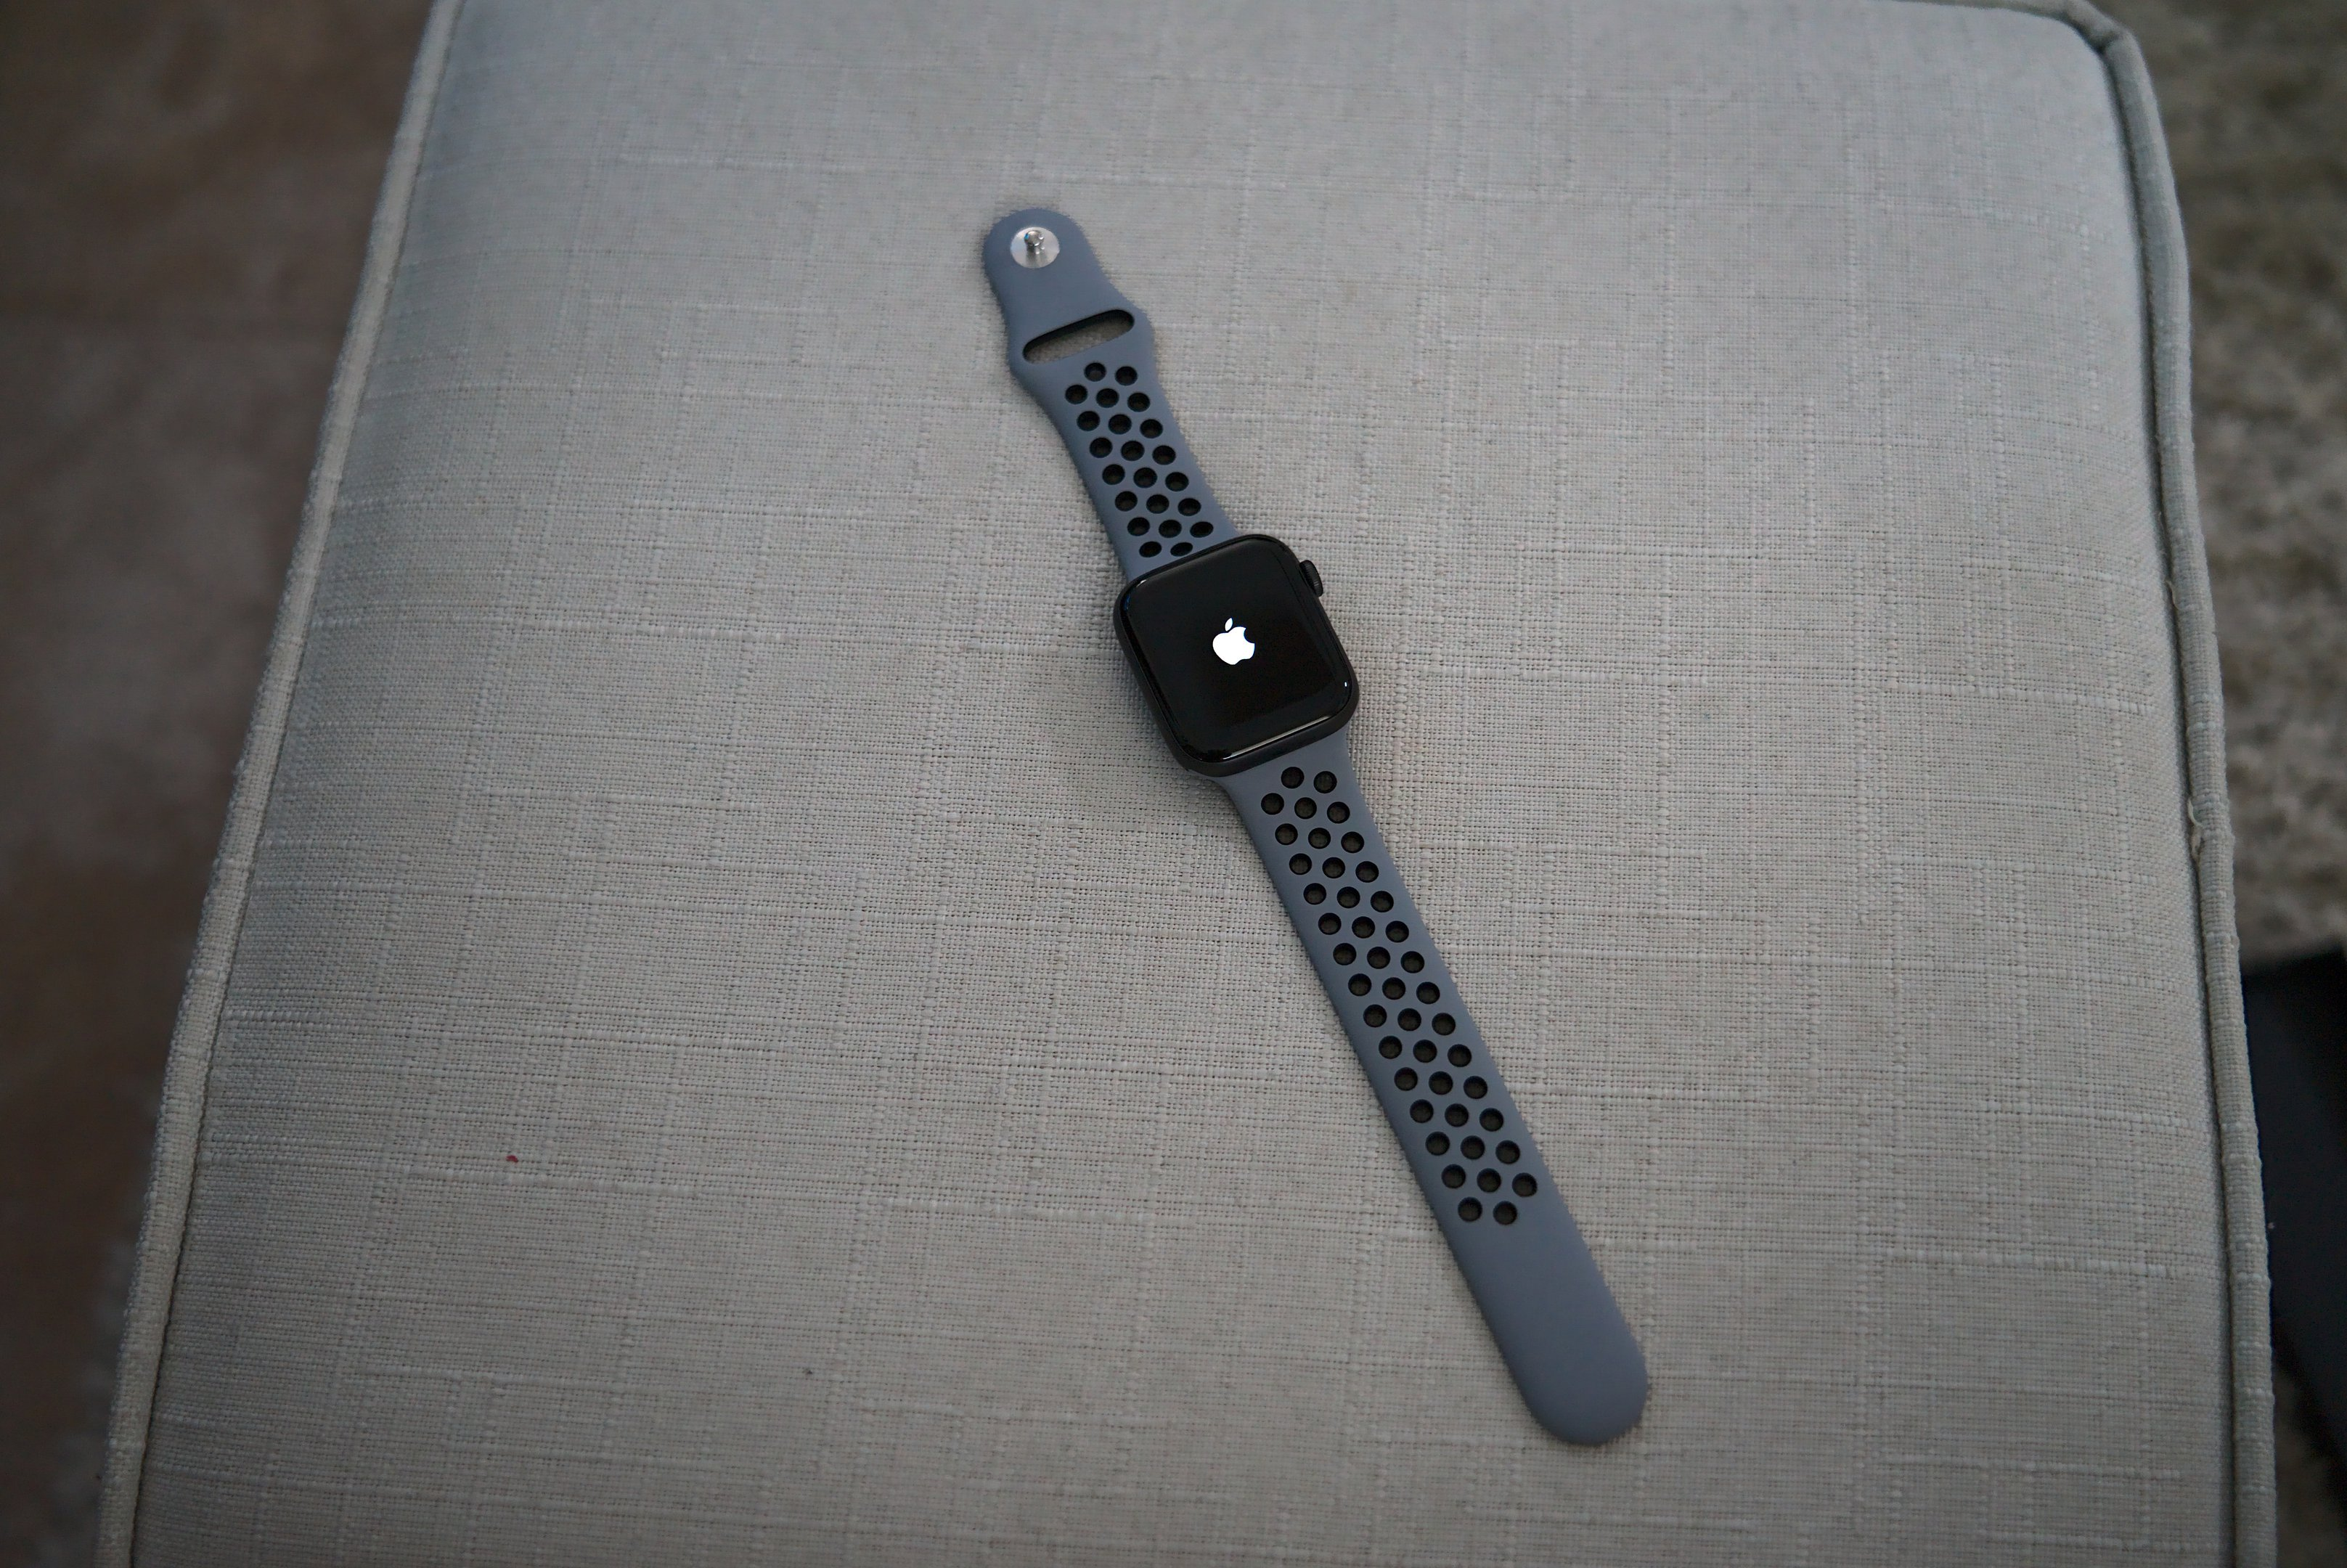 Apple Watch Booting